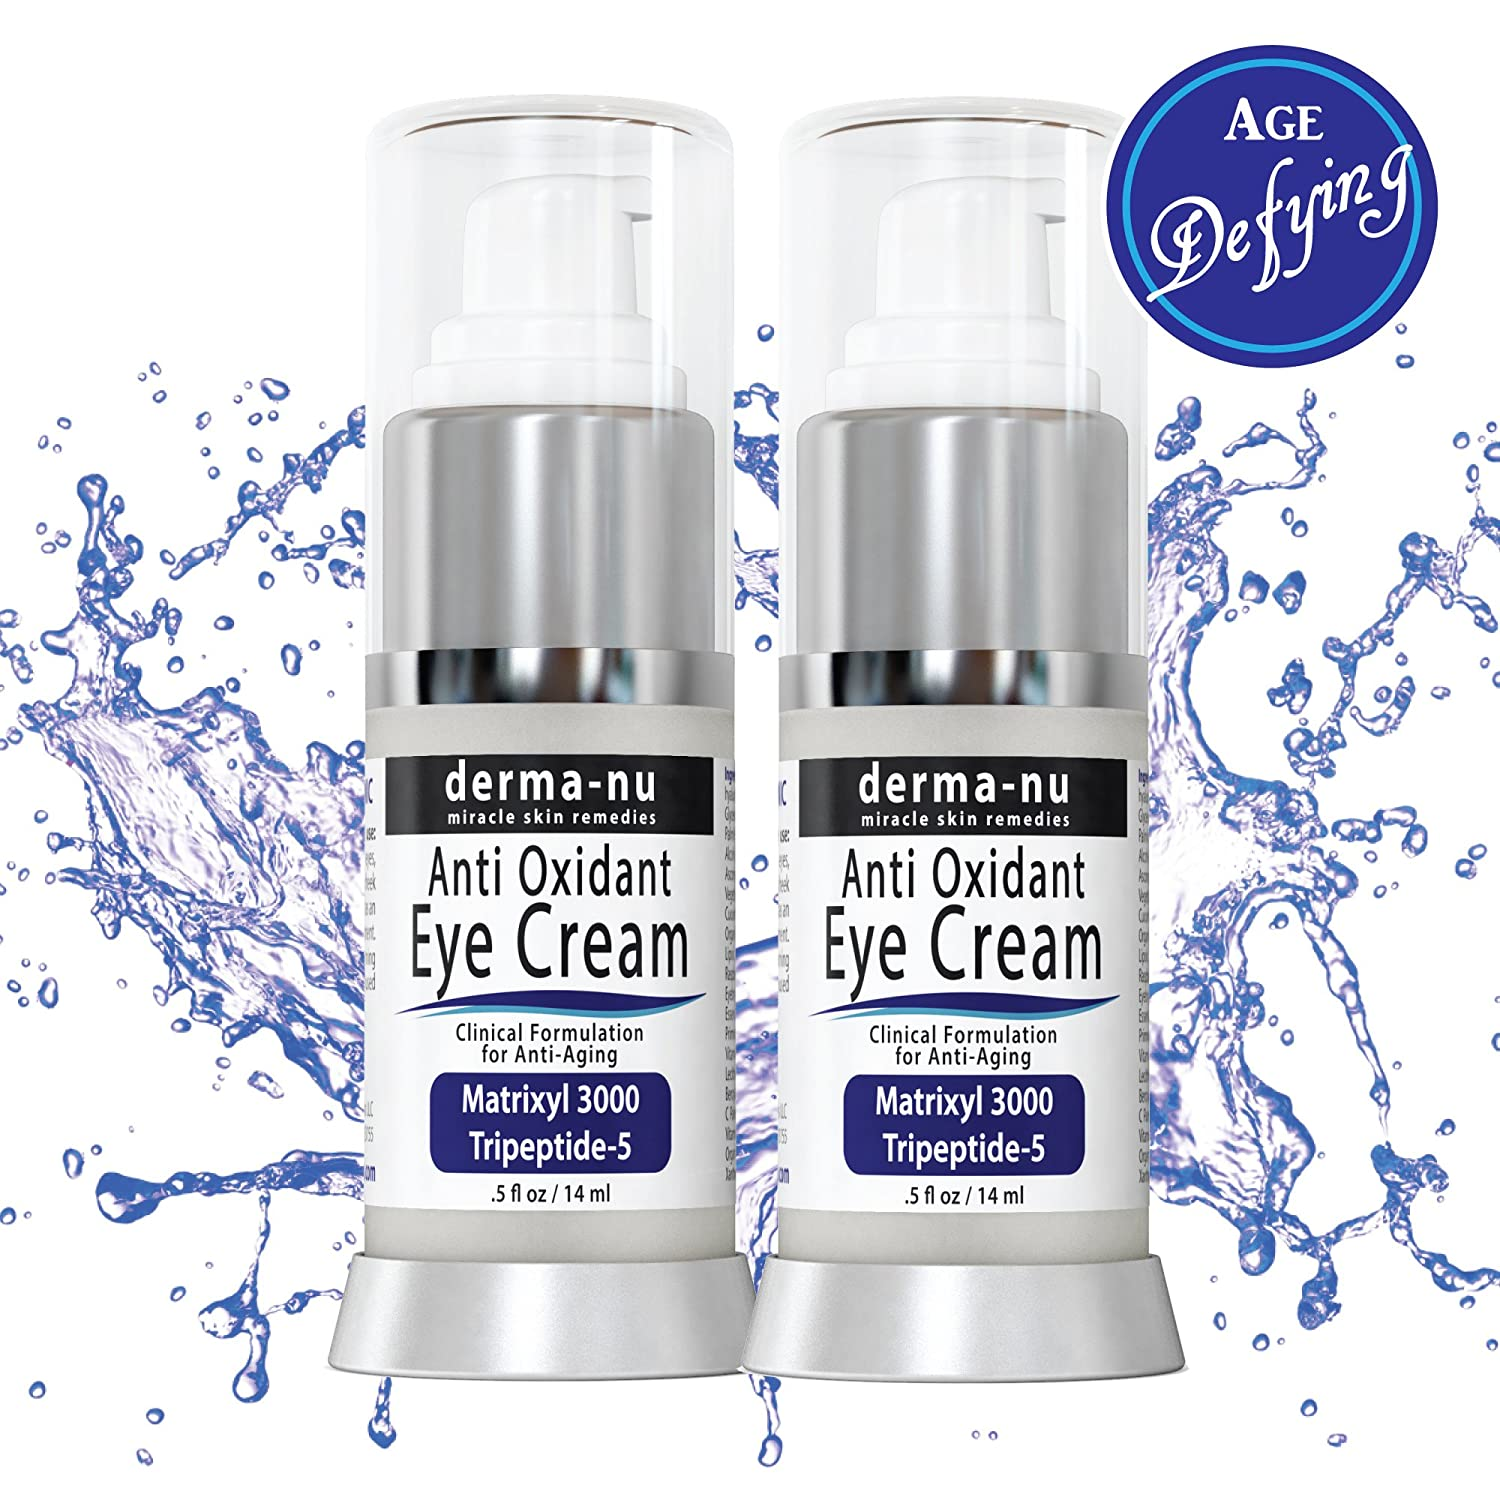 Eye Cream For Dark Circles And Puffiness - 2 Pack - Treatment For Under Eye Wrinkles Dark Circles Crows Feet And Puffy Eyes - Moisturize Sensitive Eyes With Powerful Anti Aging Properties